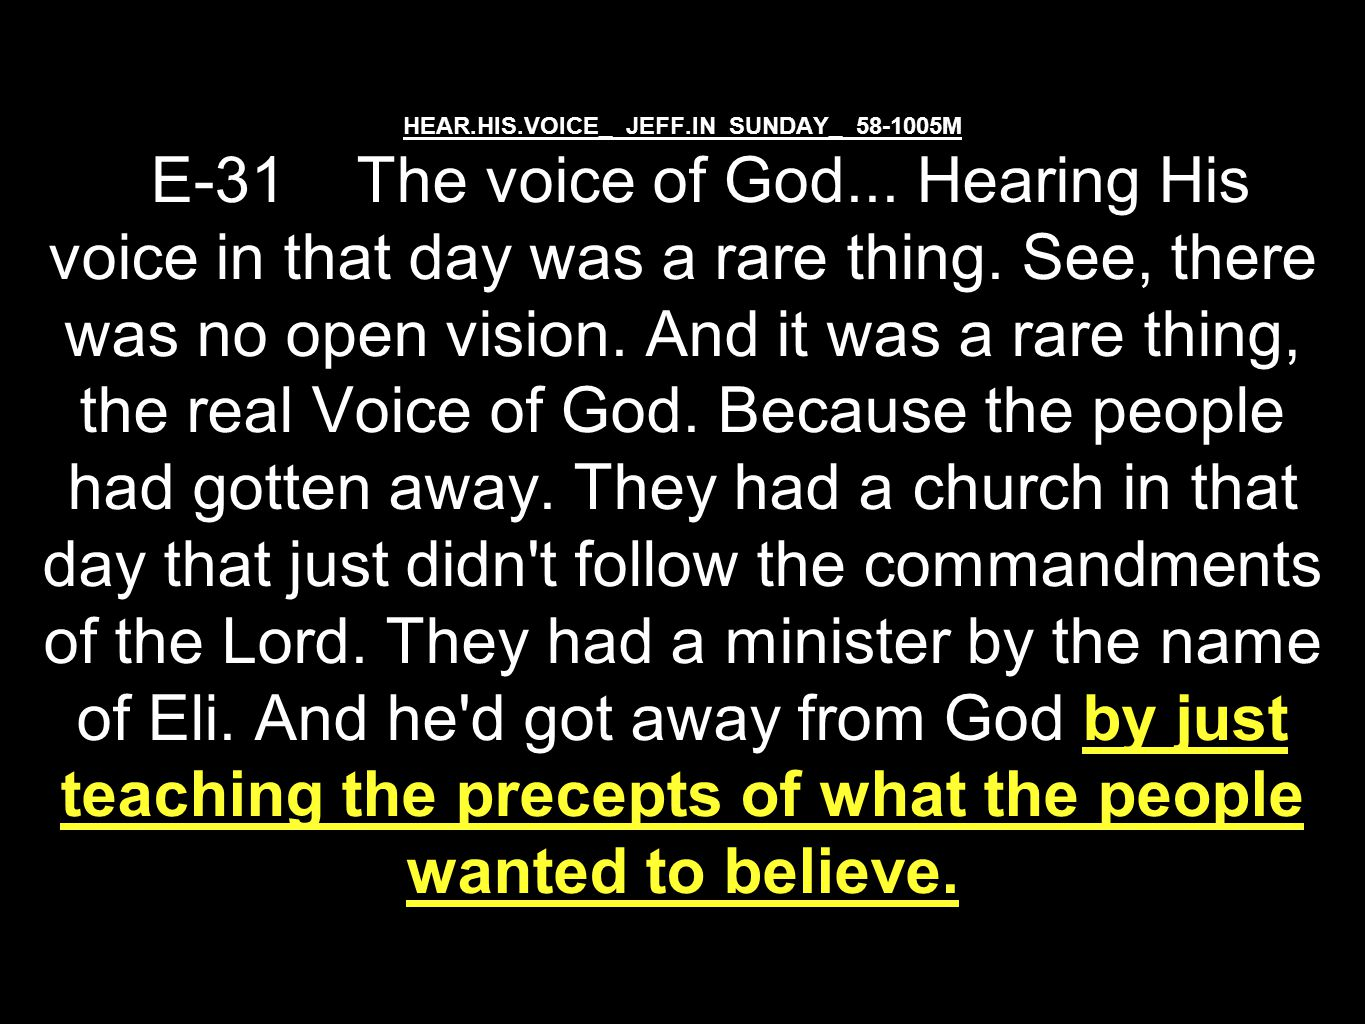 HEAR.HIS.VOICE_ JEFF.IN SUNDAY_ 58-1005M E-31 The voice of God...